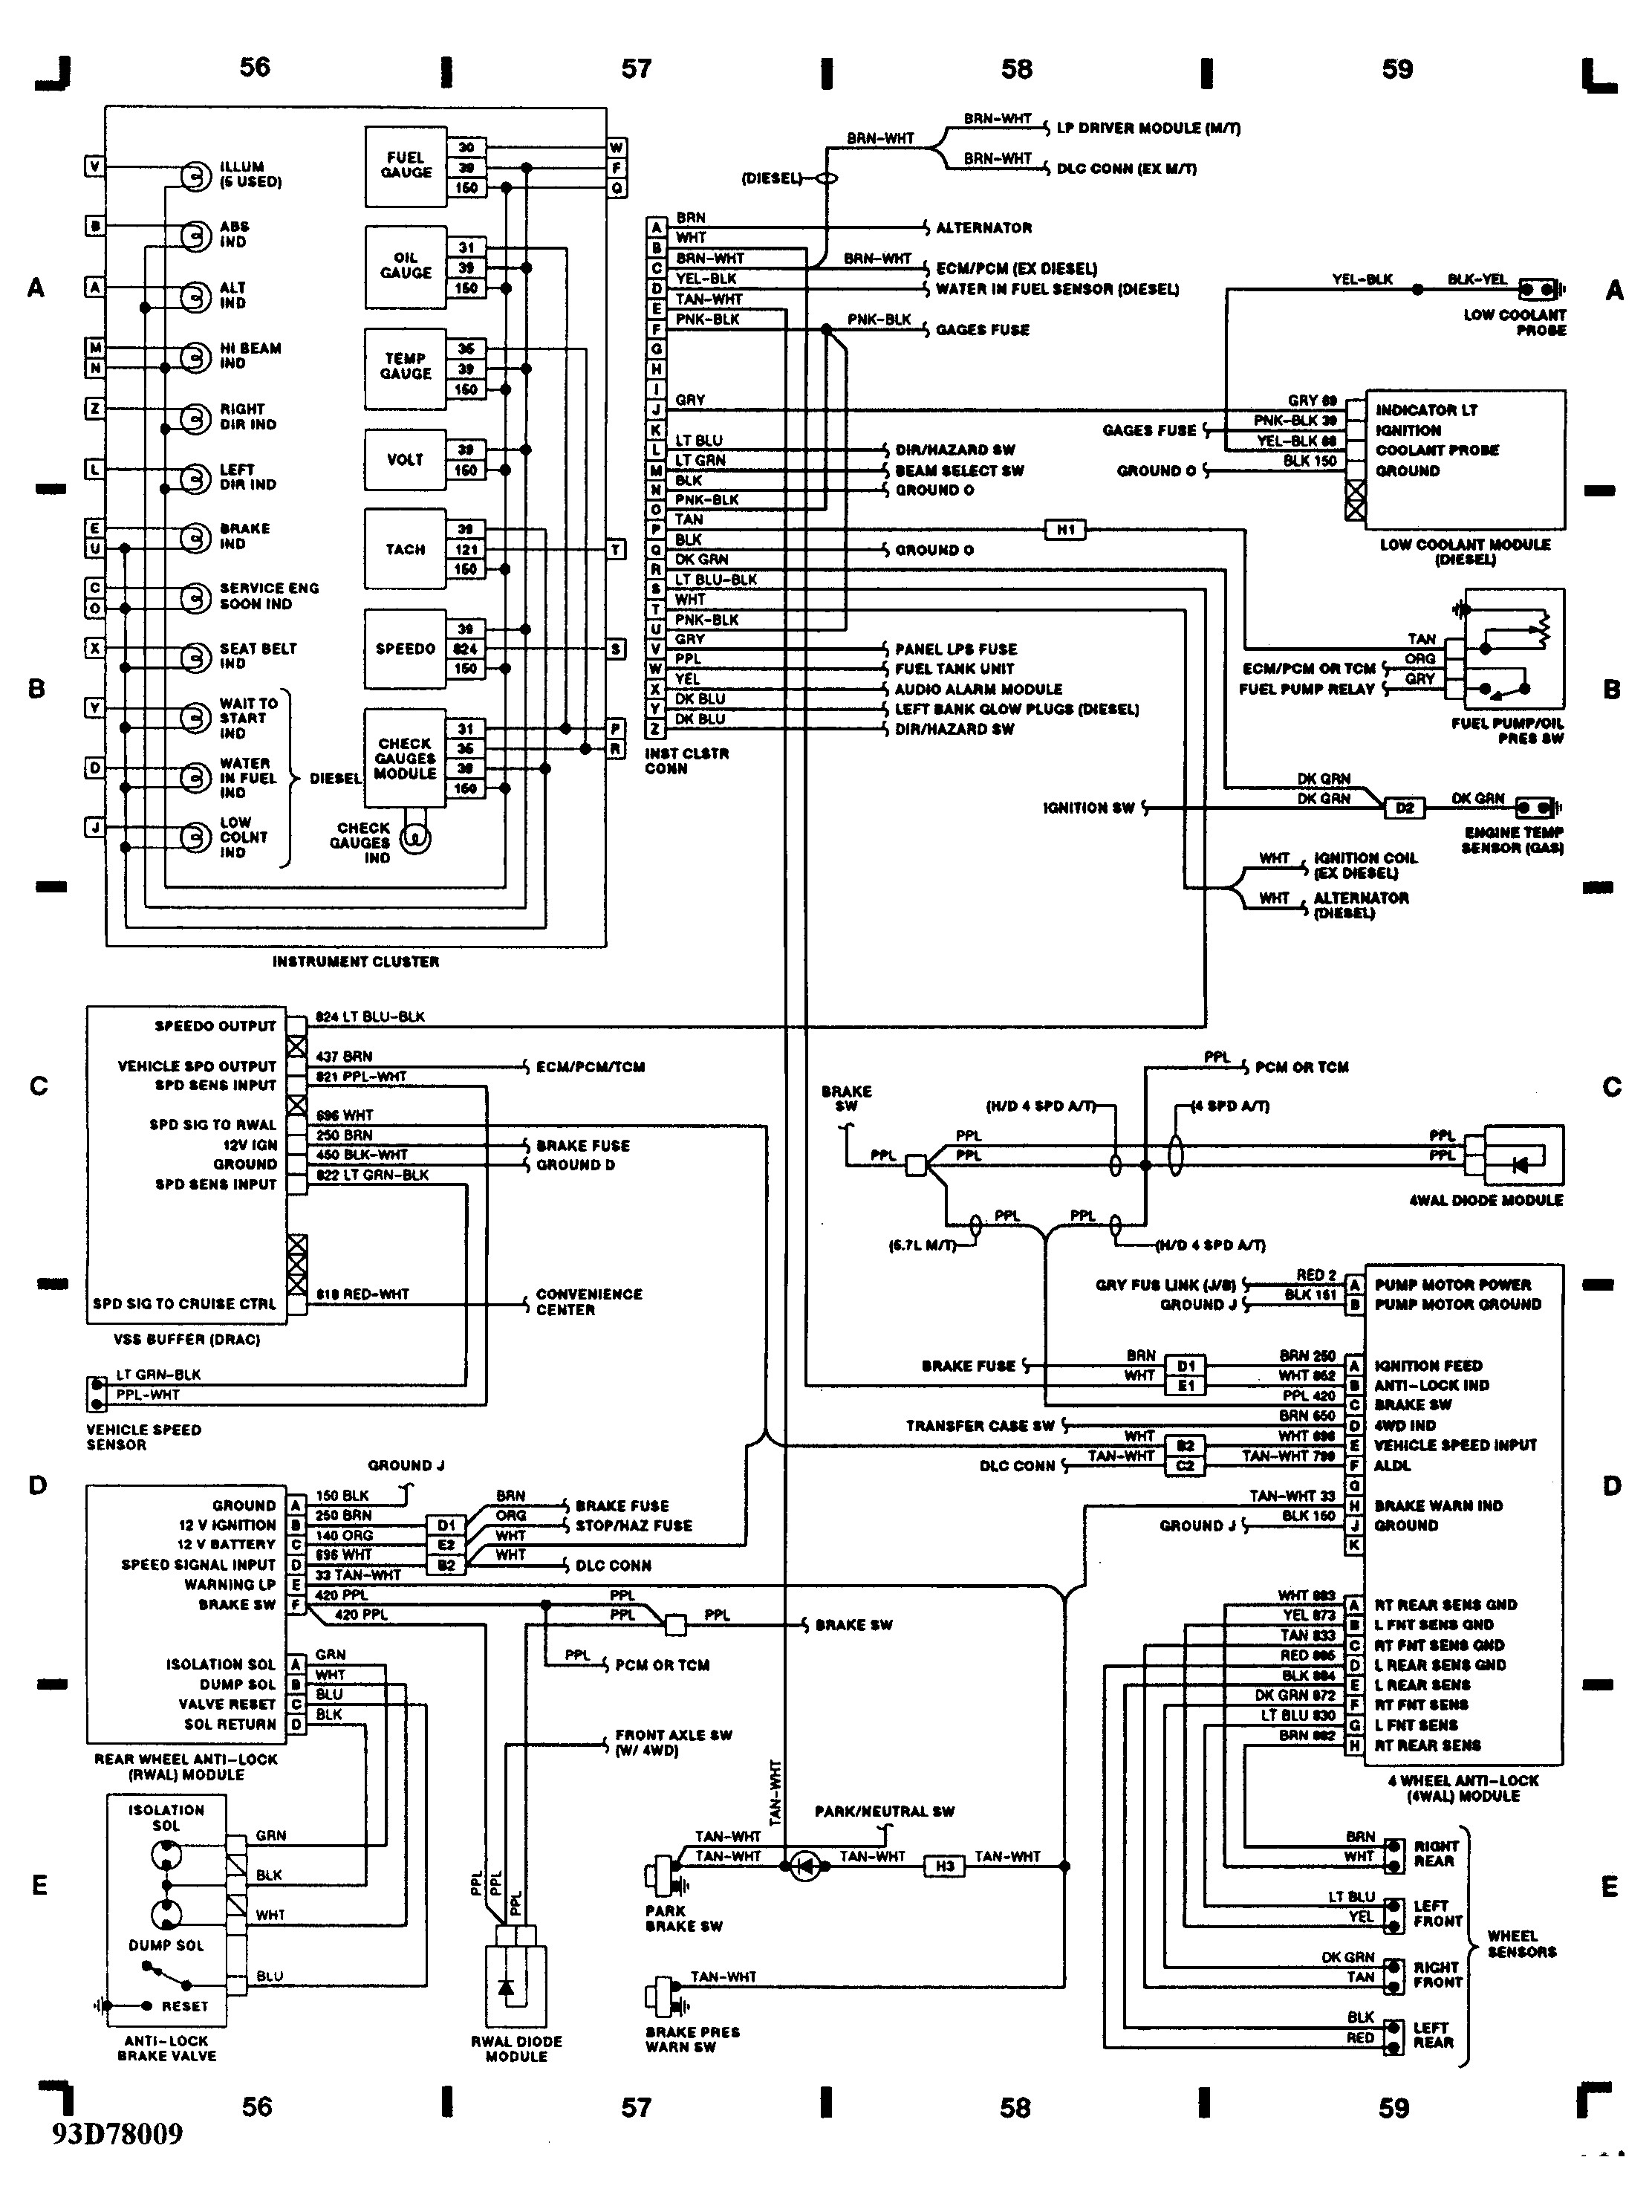 chevy wiring harness diagram Collection-chevy wiring harness diagram Download 5 7 vortec wiring harness diagram Collection 5 7 Vortec 8-s